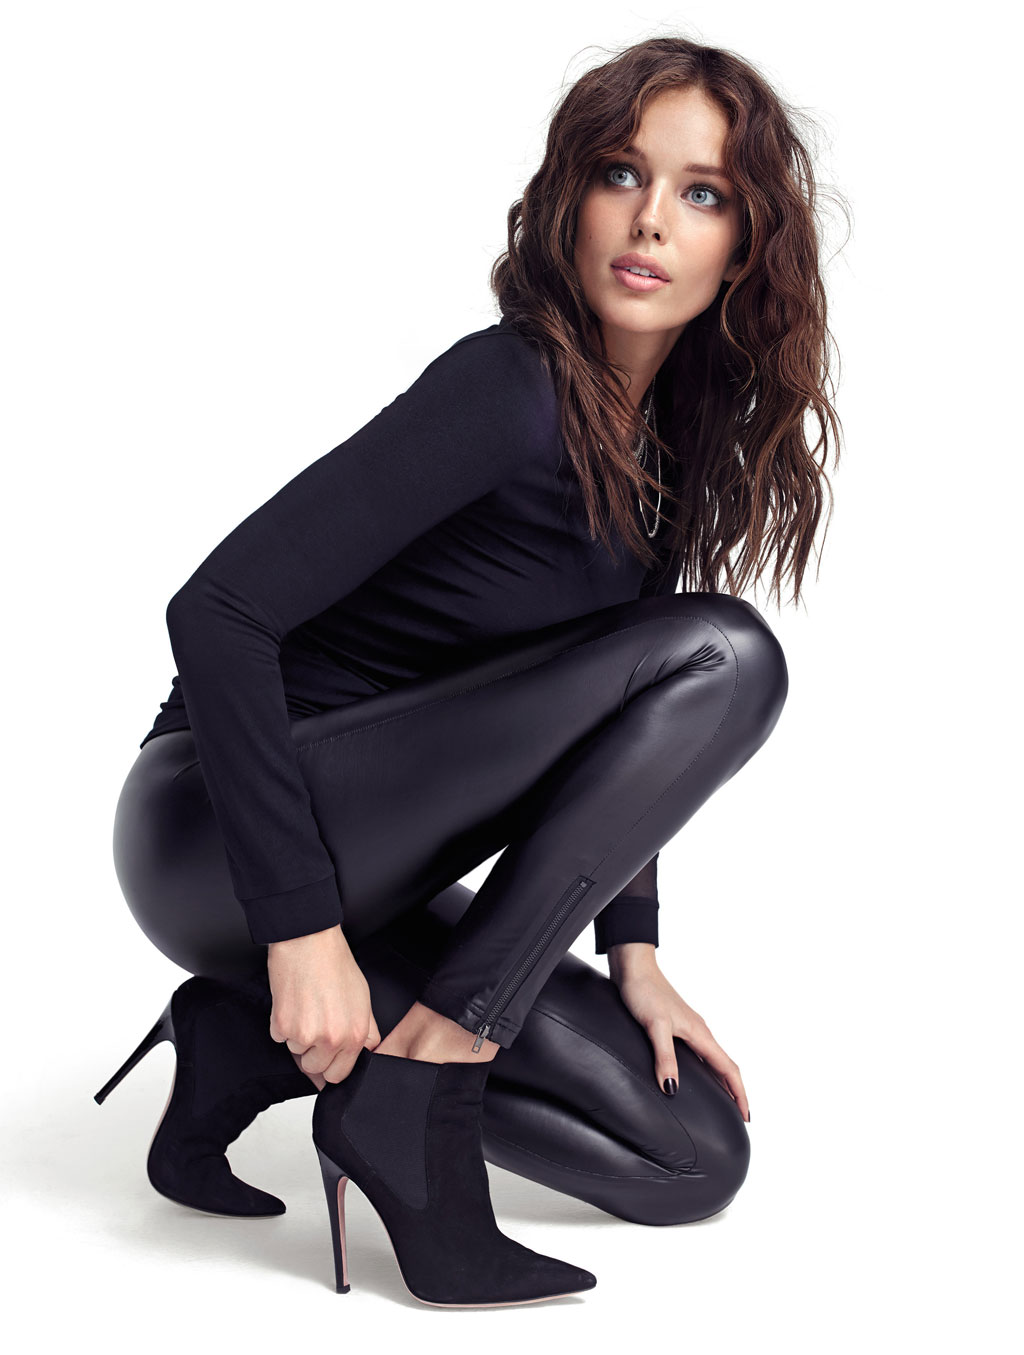 Emily DiDonato photoshoot Fall Winter 2014 Calzedonia Collection